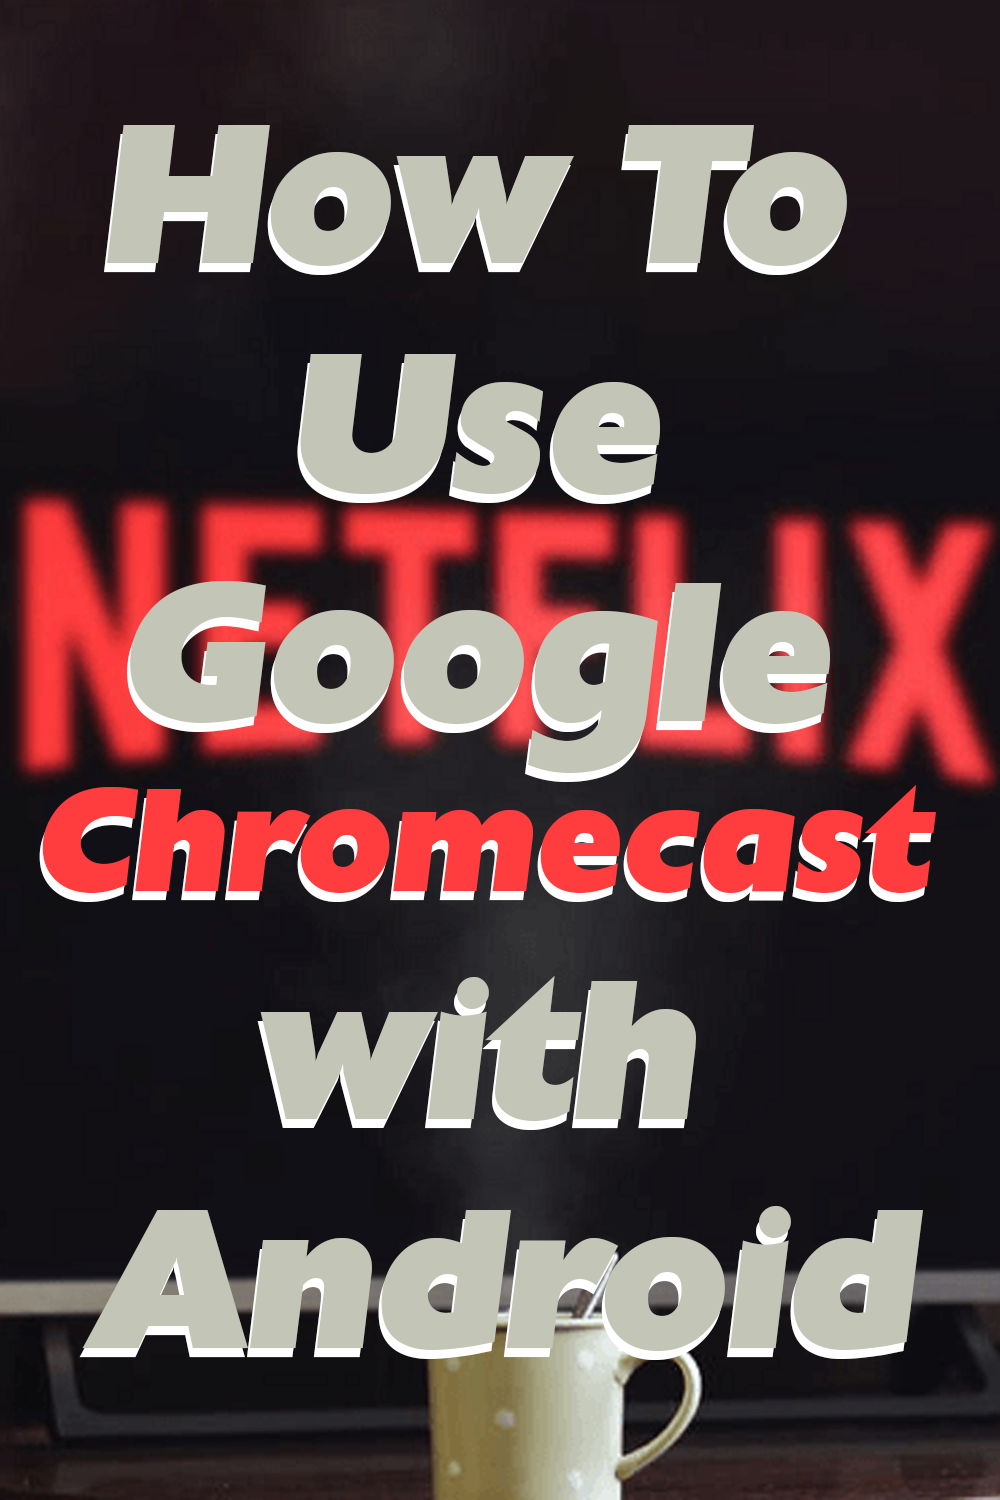 How To Use Google Chromecast with Android in 2020